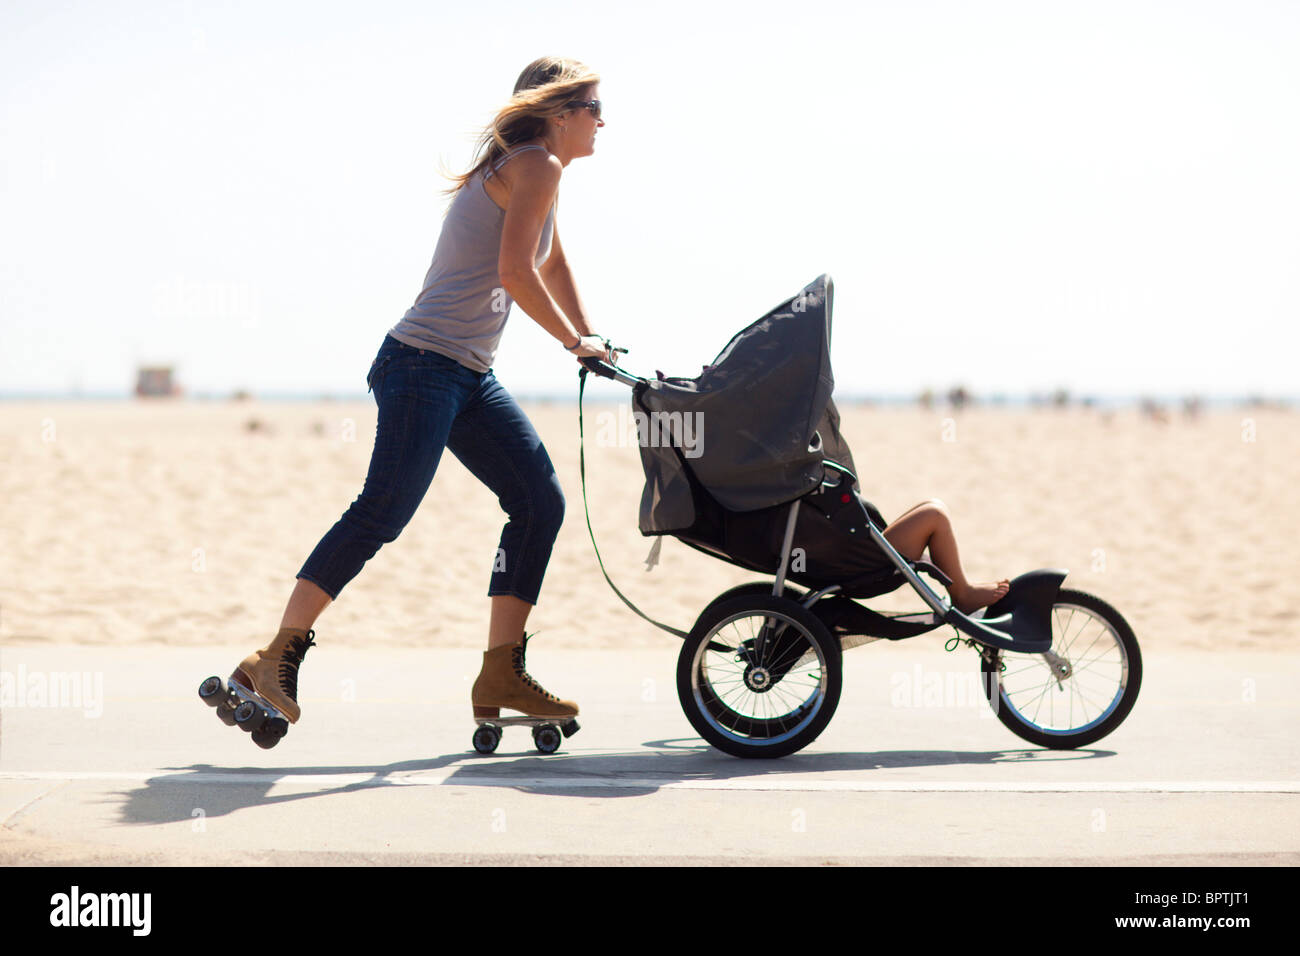 Roller skating los angeles - A Mother Roller Skating With Baby In Stroller Los Angeles California United States Of America